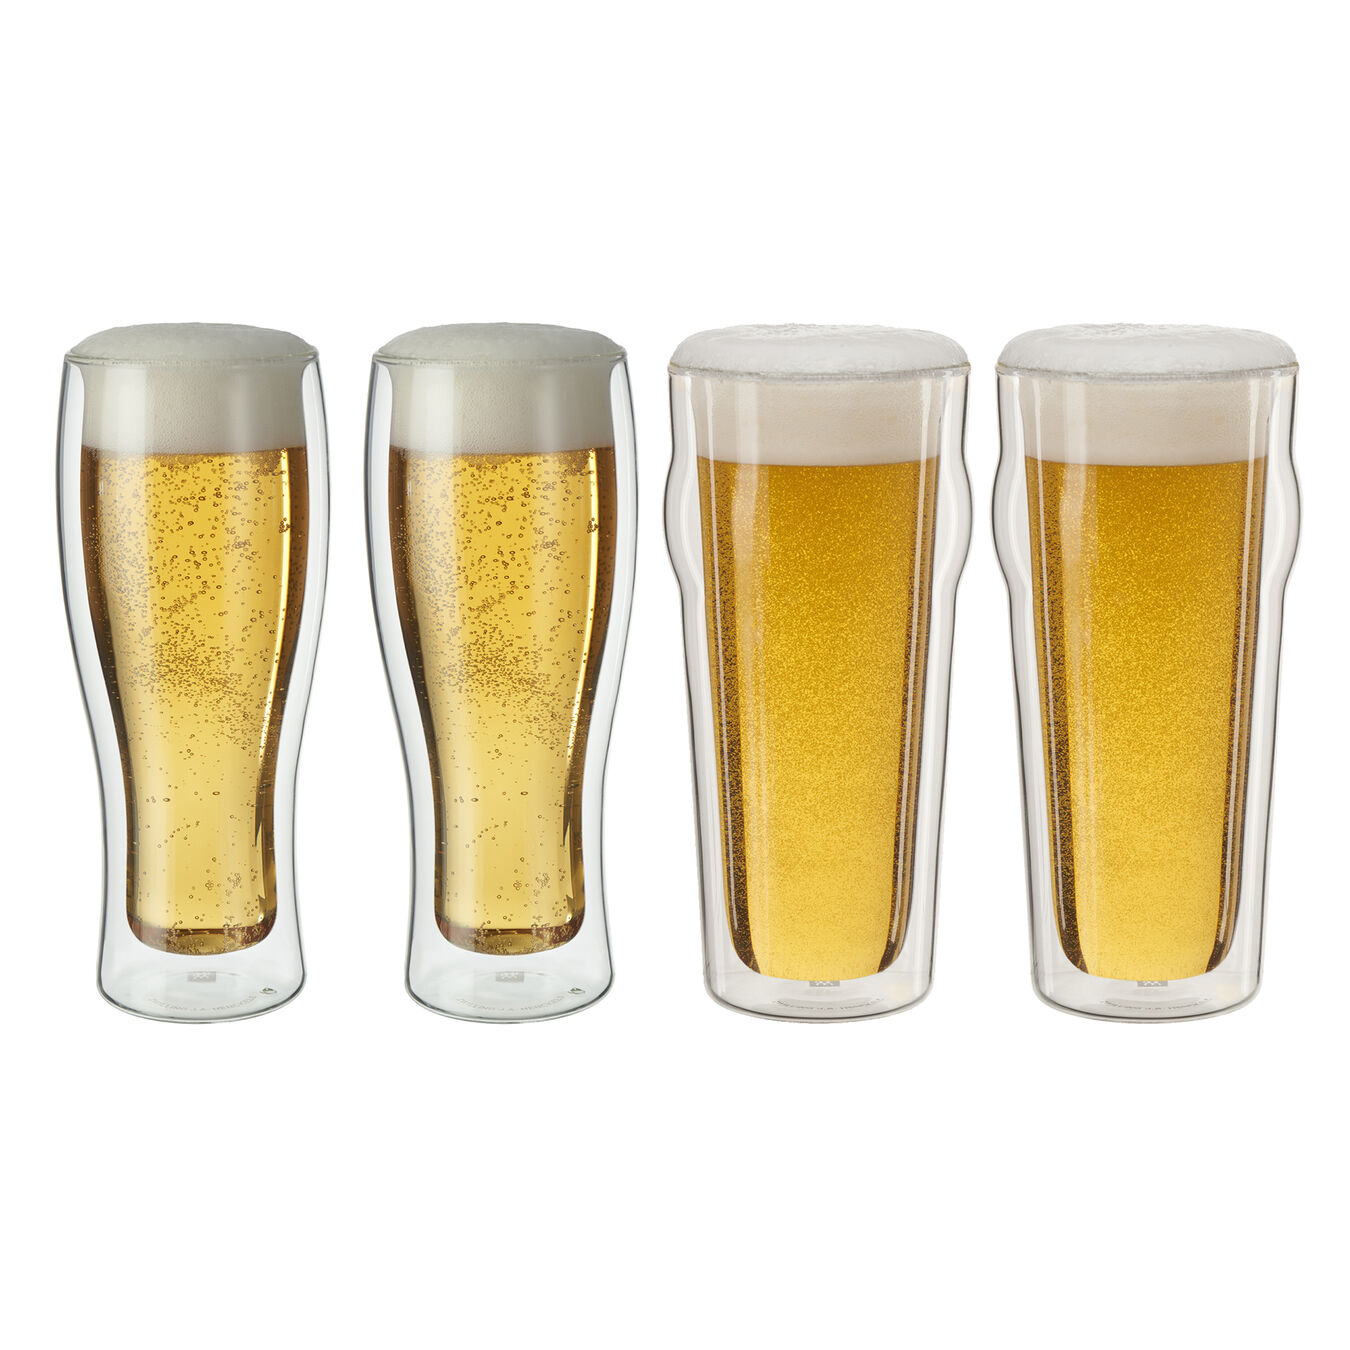 DOUBLE WALL GLASS  4-PIECE BEER SET,,large 1